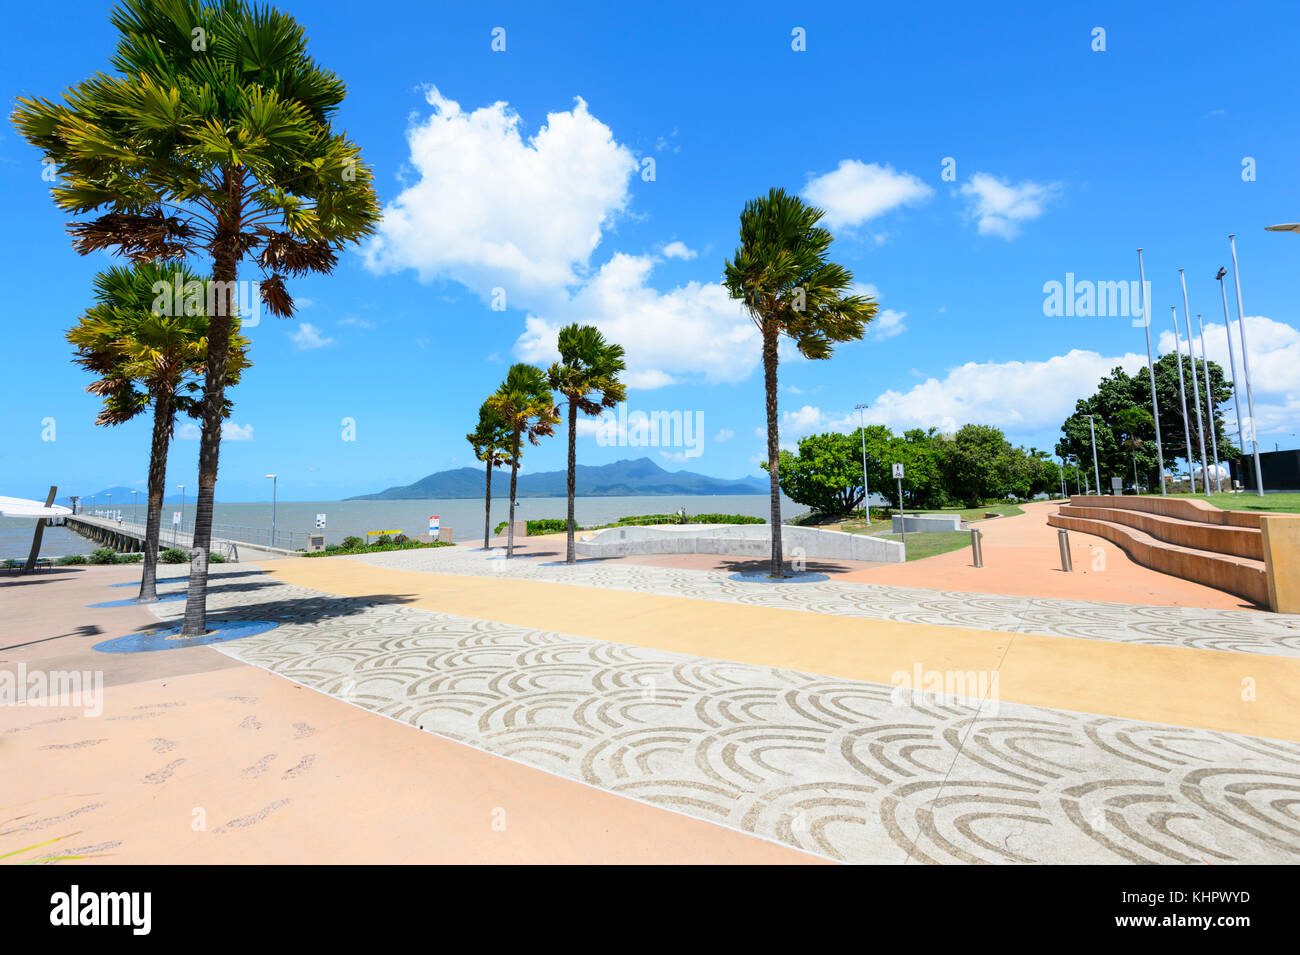 Decorated Pavement on Cardwell waterfront near the jetty, Far North Queensland, FNQ, Australia Stock Photo